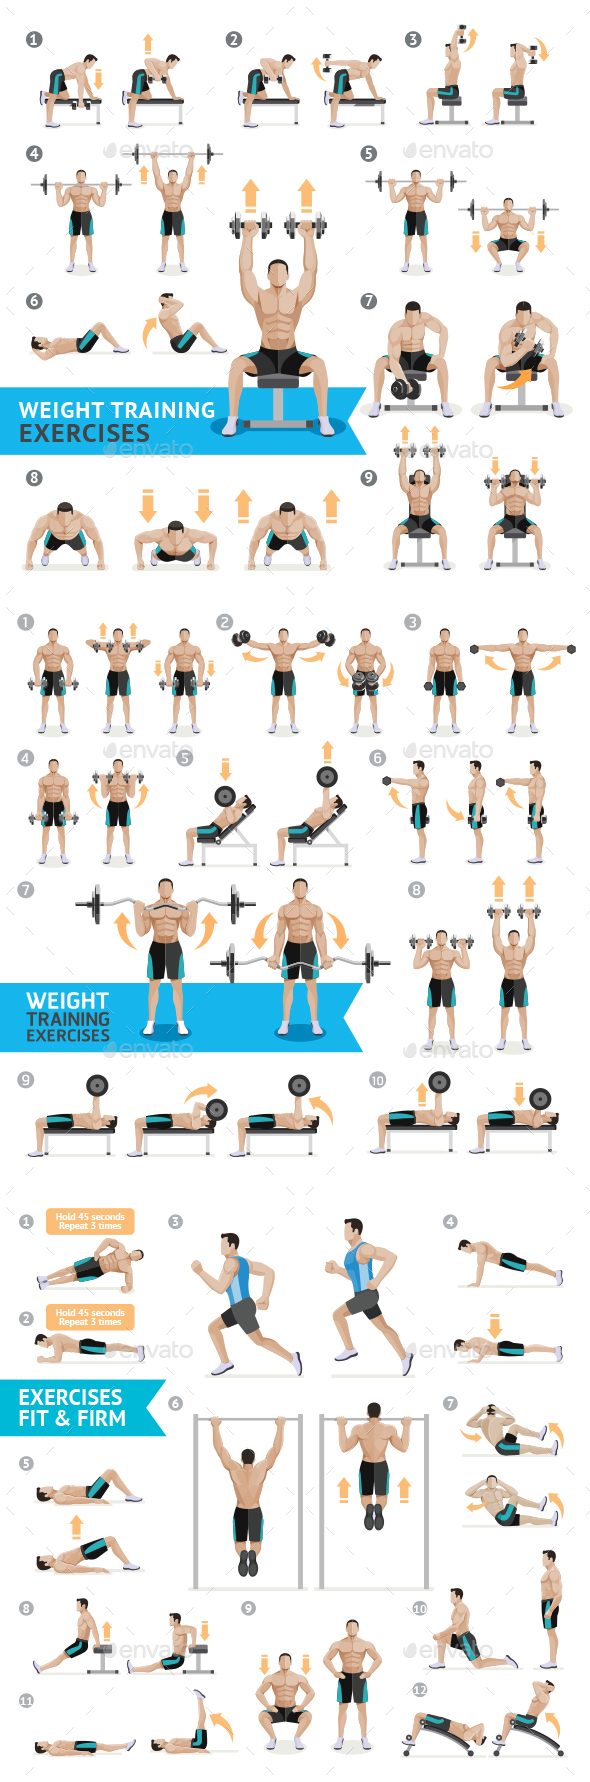 Dumbbell Exercises and Workouts Weight Training - Sports/Activity Conceptual